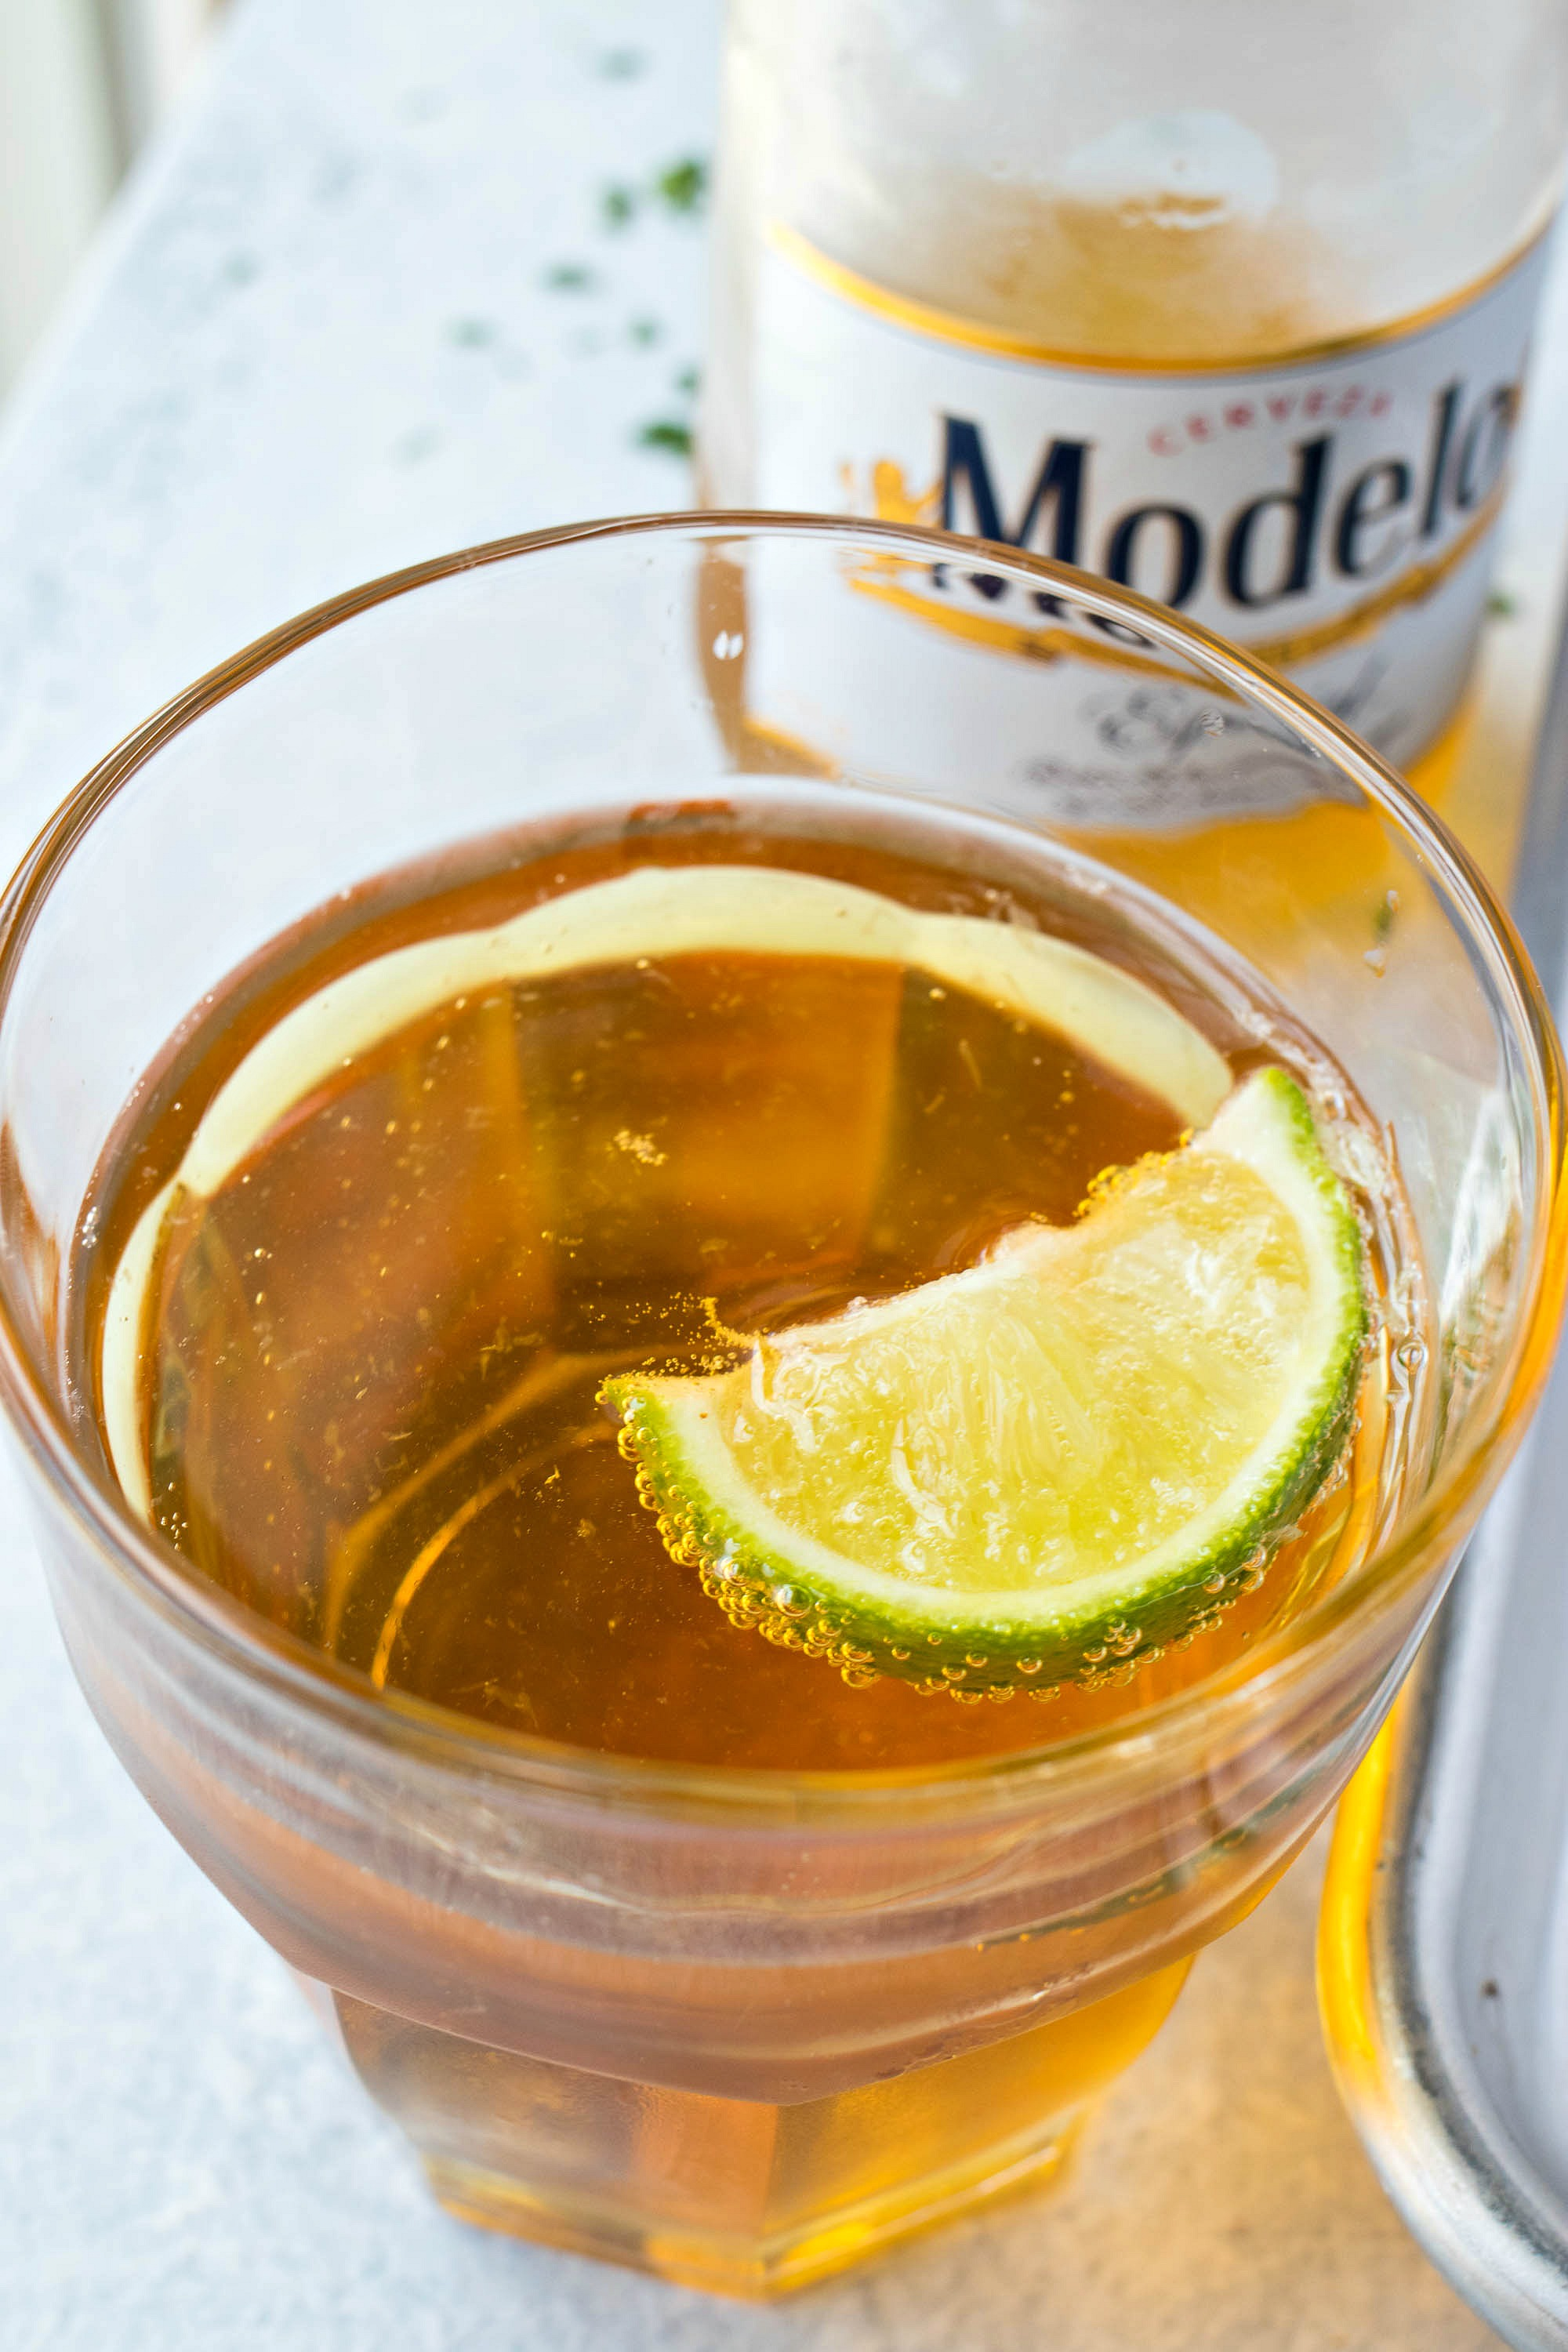 Glass of Modelo especial with a lime slice